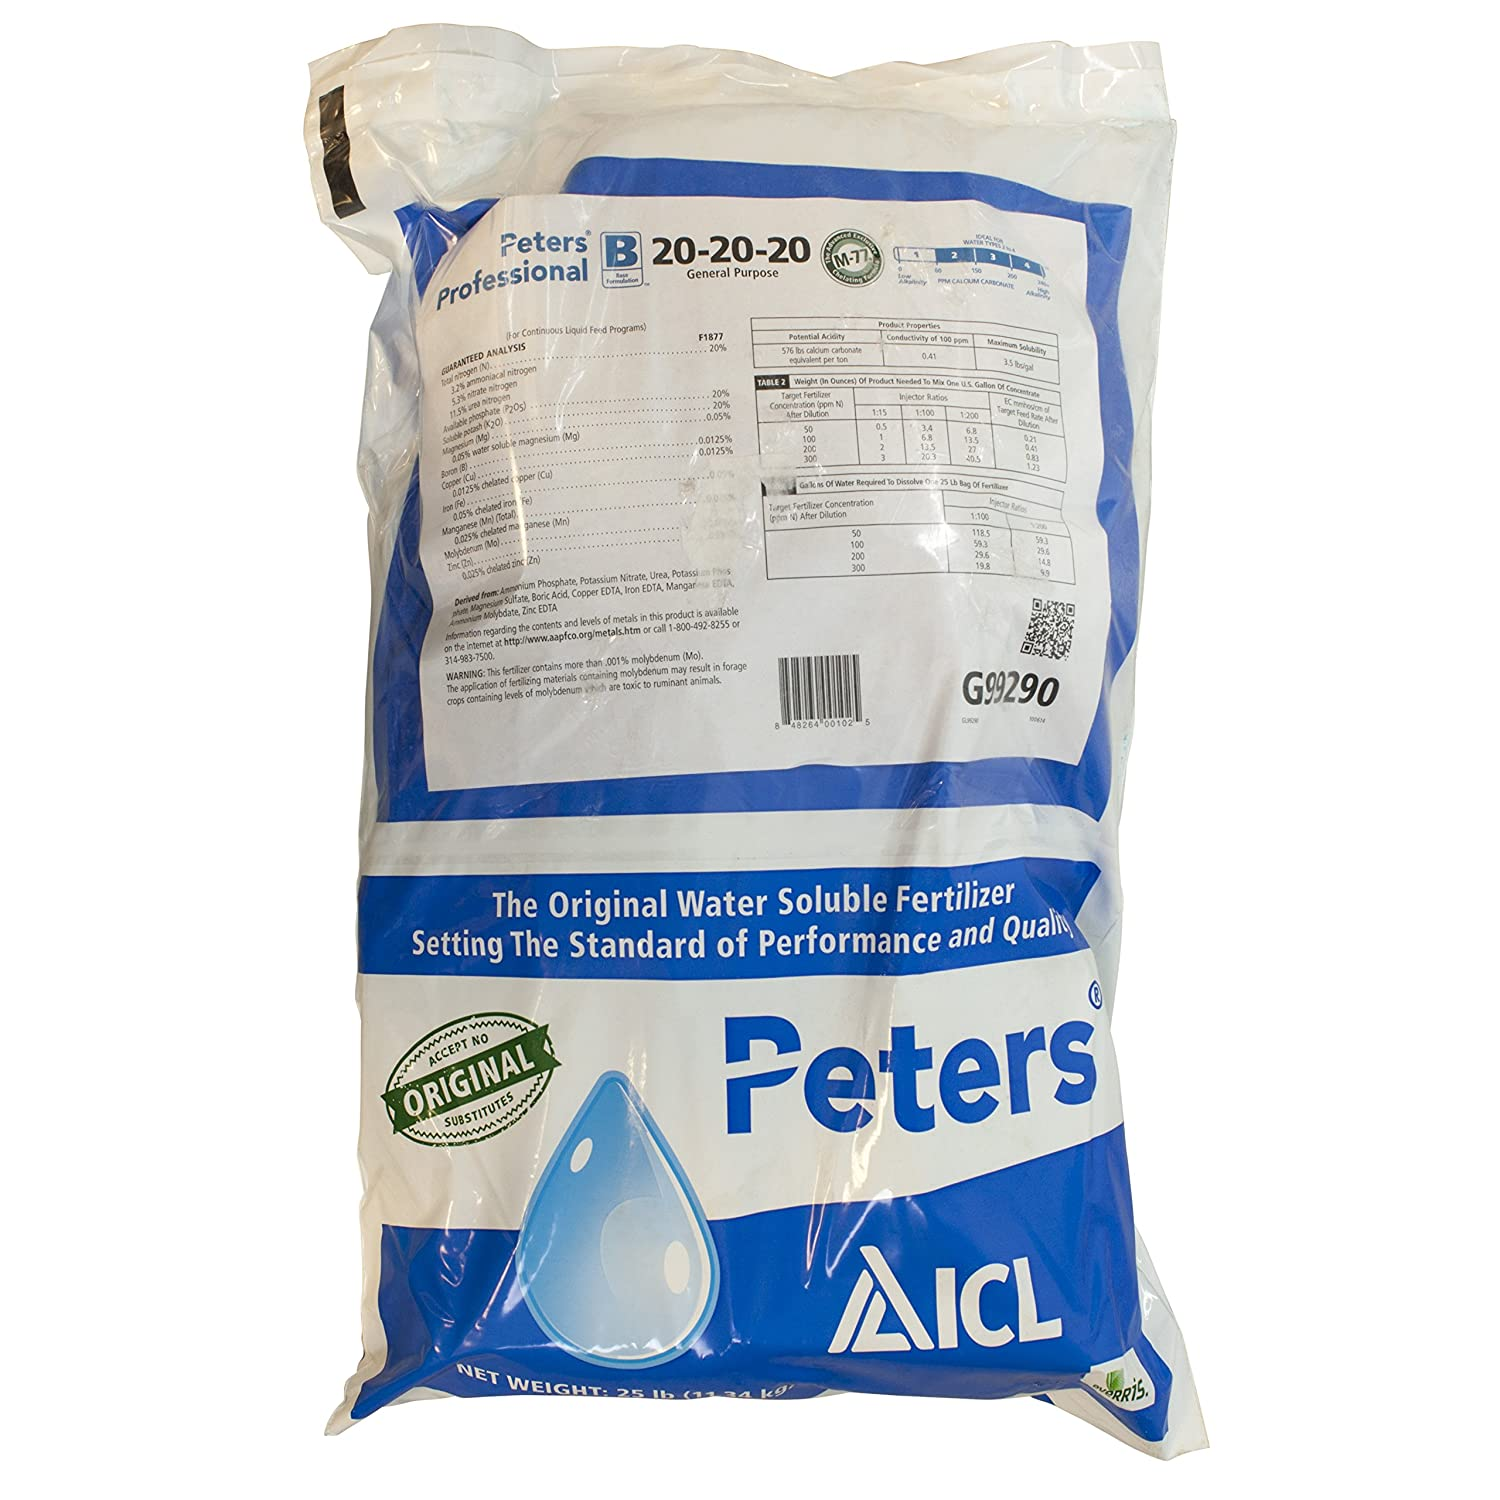 Jacks Prof 77010 General Purpose Fertilizer, 20-20-20 Fertilizer, 25-Pound